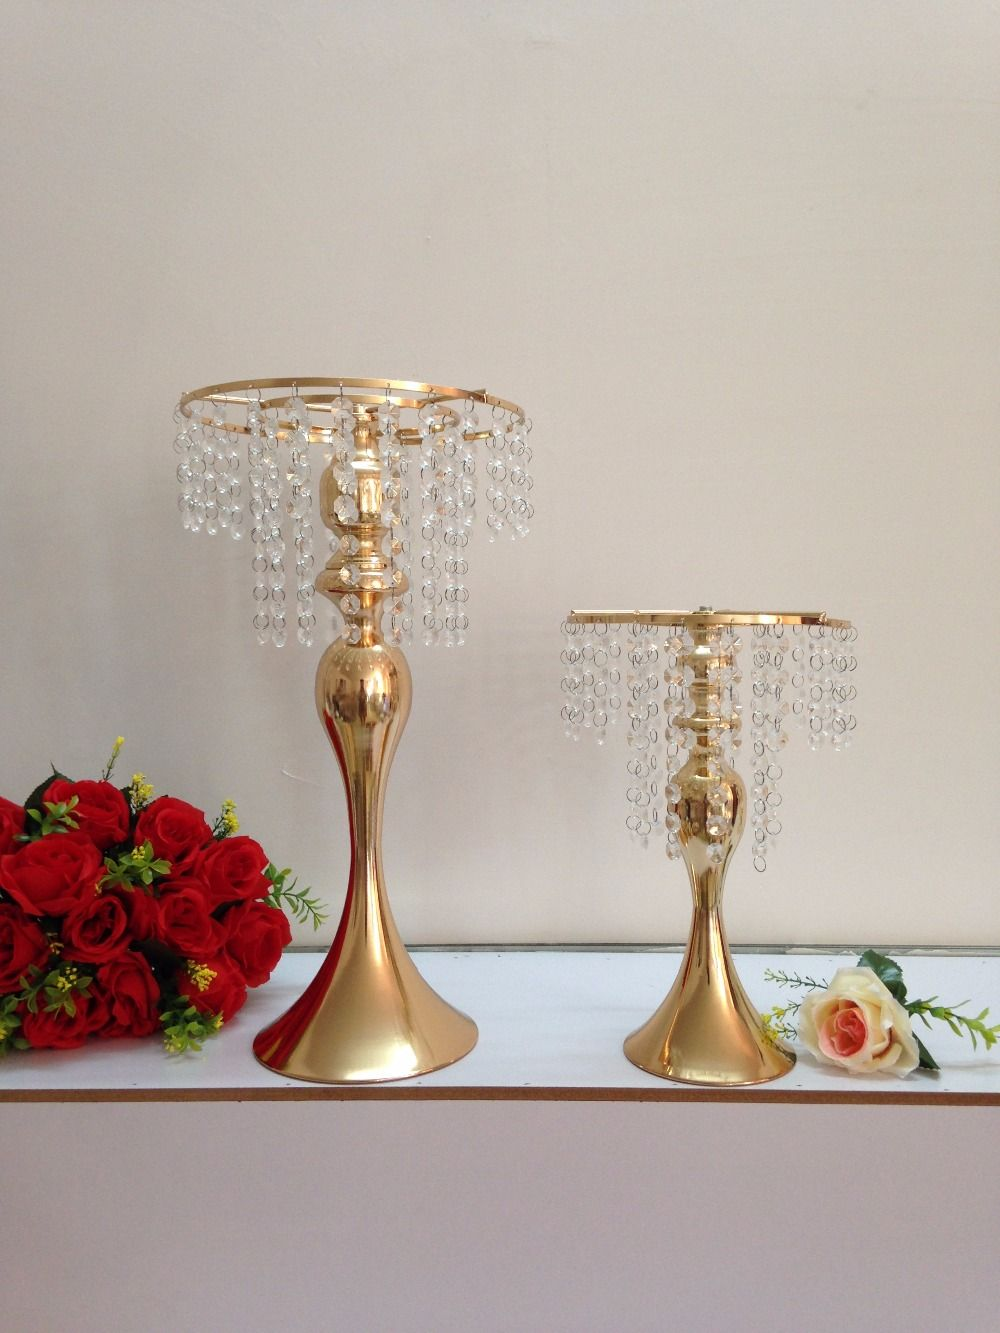 Cheap Candelabra Buy Quality Lamp Directly From China Flower Shell Suppliers Small Size Gold Wedding Vase Centerpiece Table